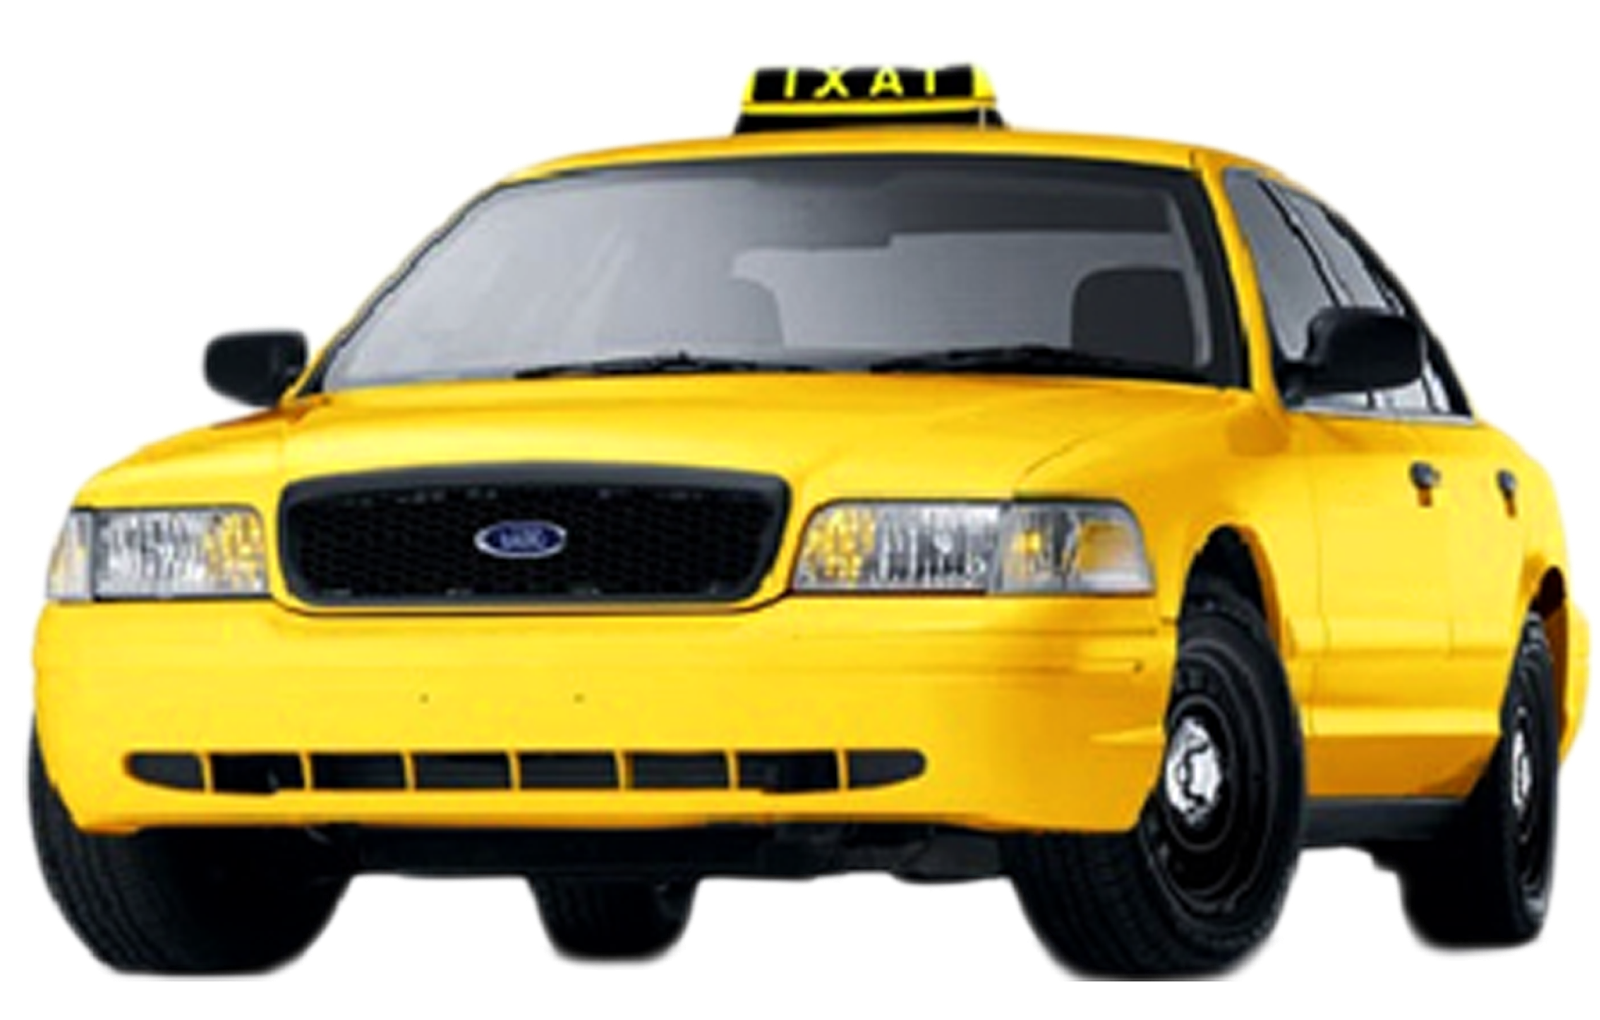 Taxi Cab High-Quality Png PNG Image - Taxi Cab PNG